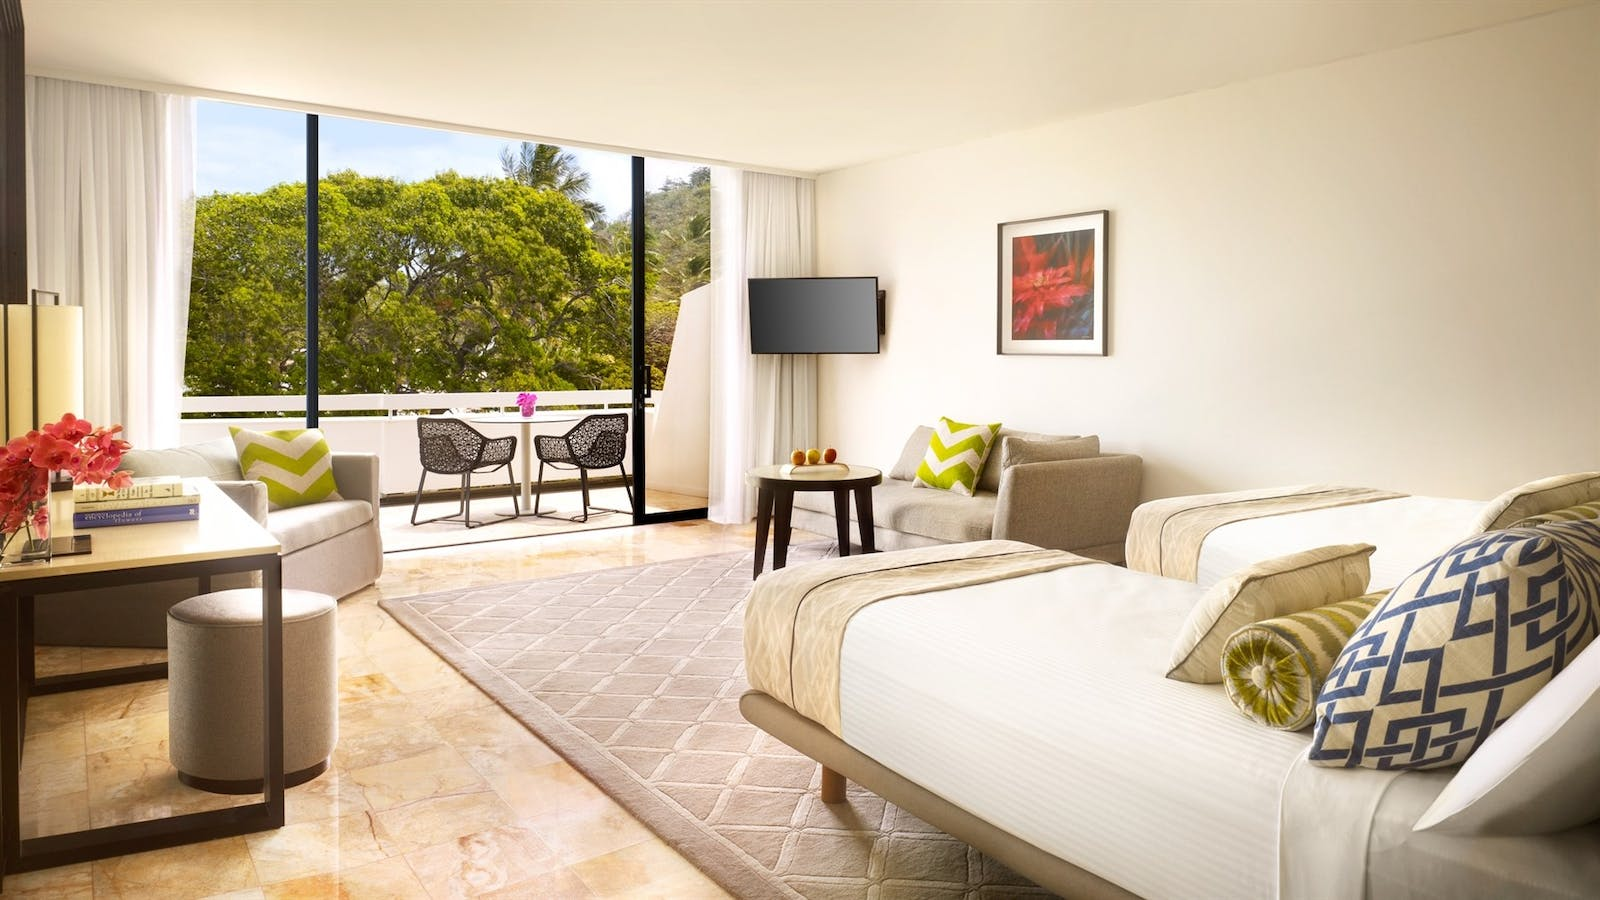 Bedroom at InterContinental Hayman Island Resort, Great Barrier Reef Islands